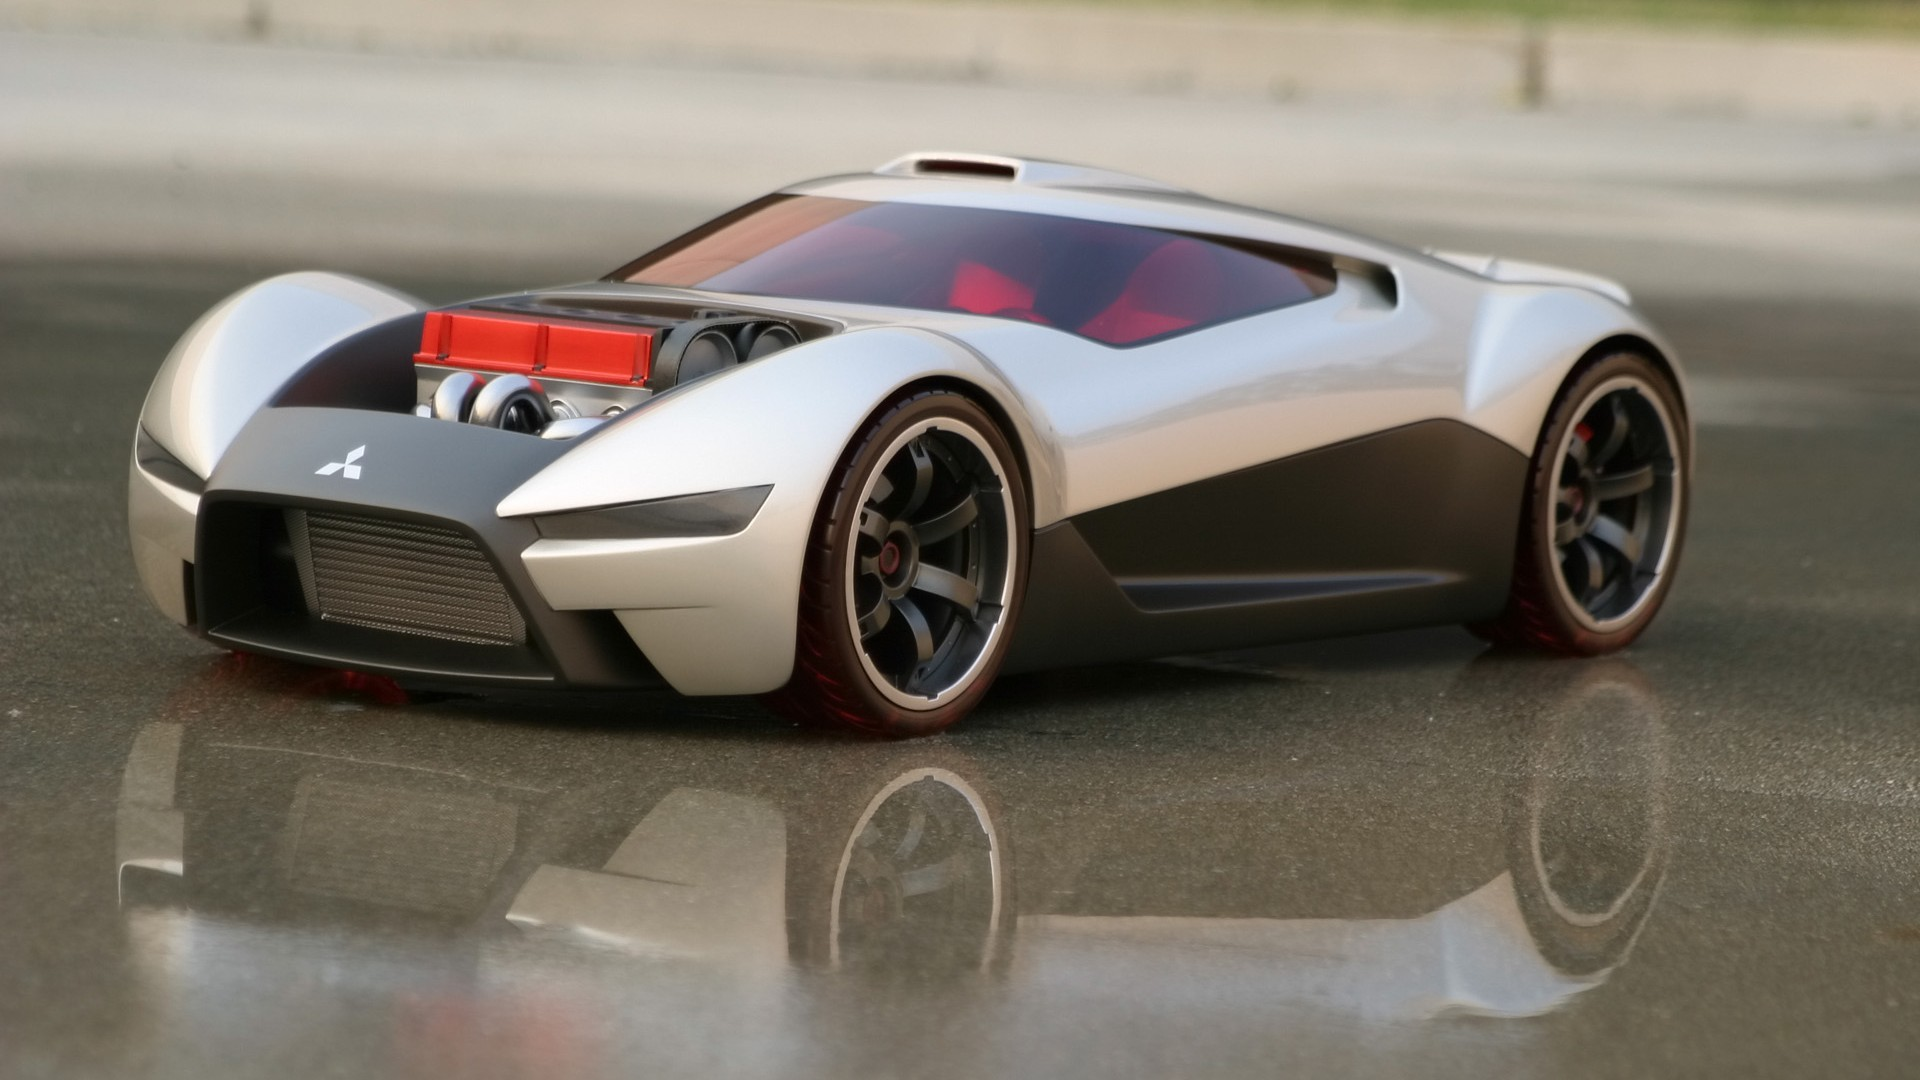 cars Mitsubishi concept art HD Wallpaper